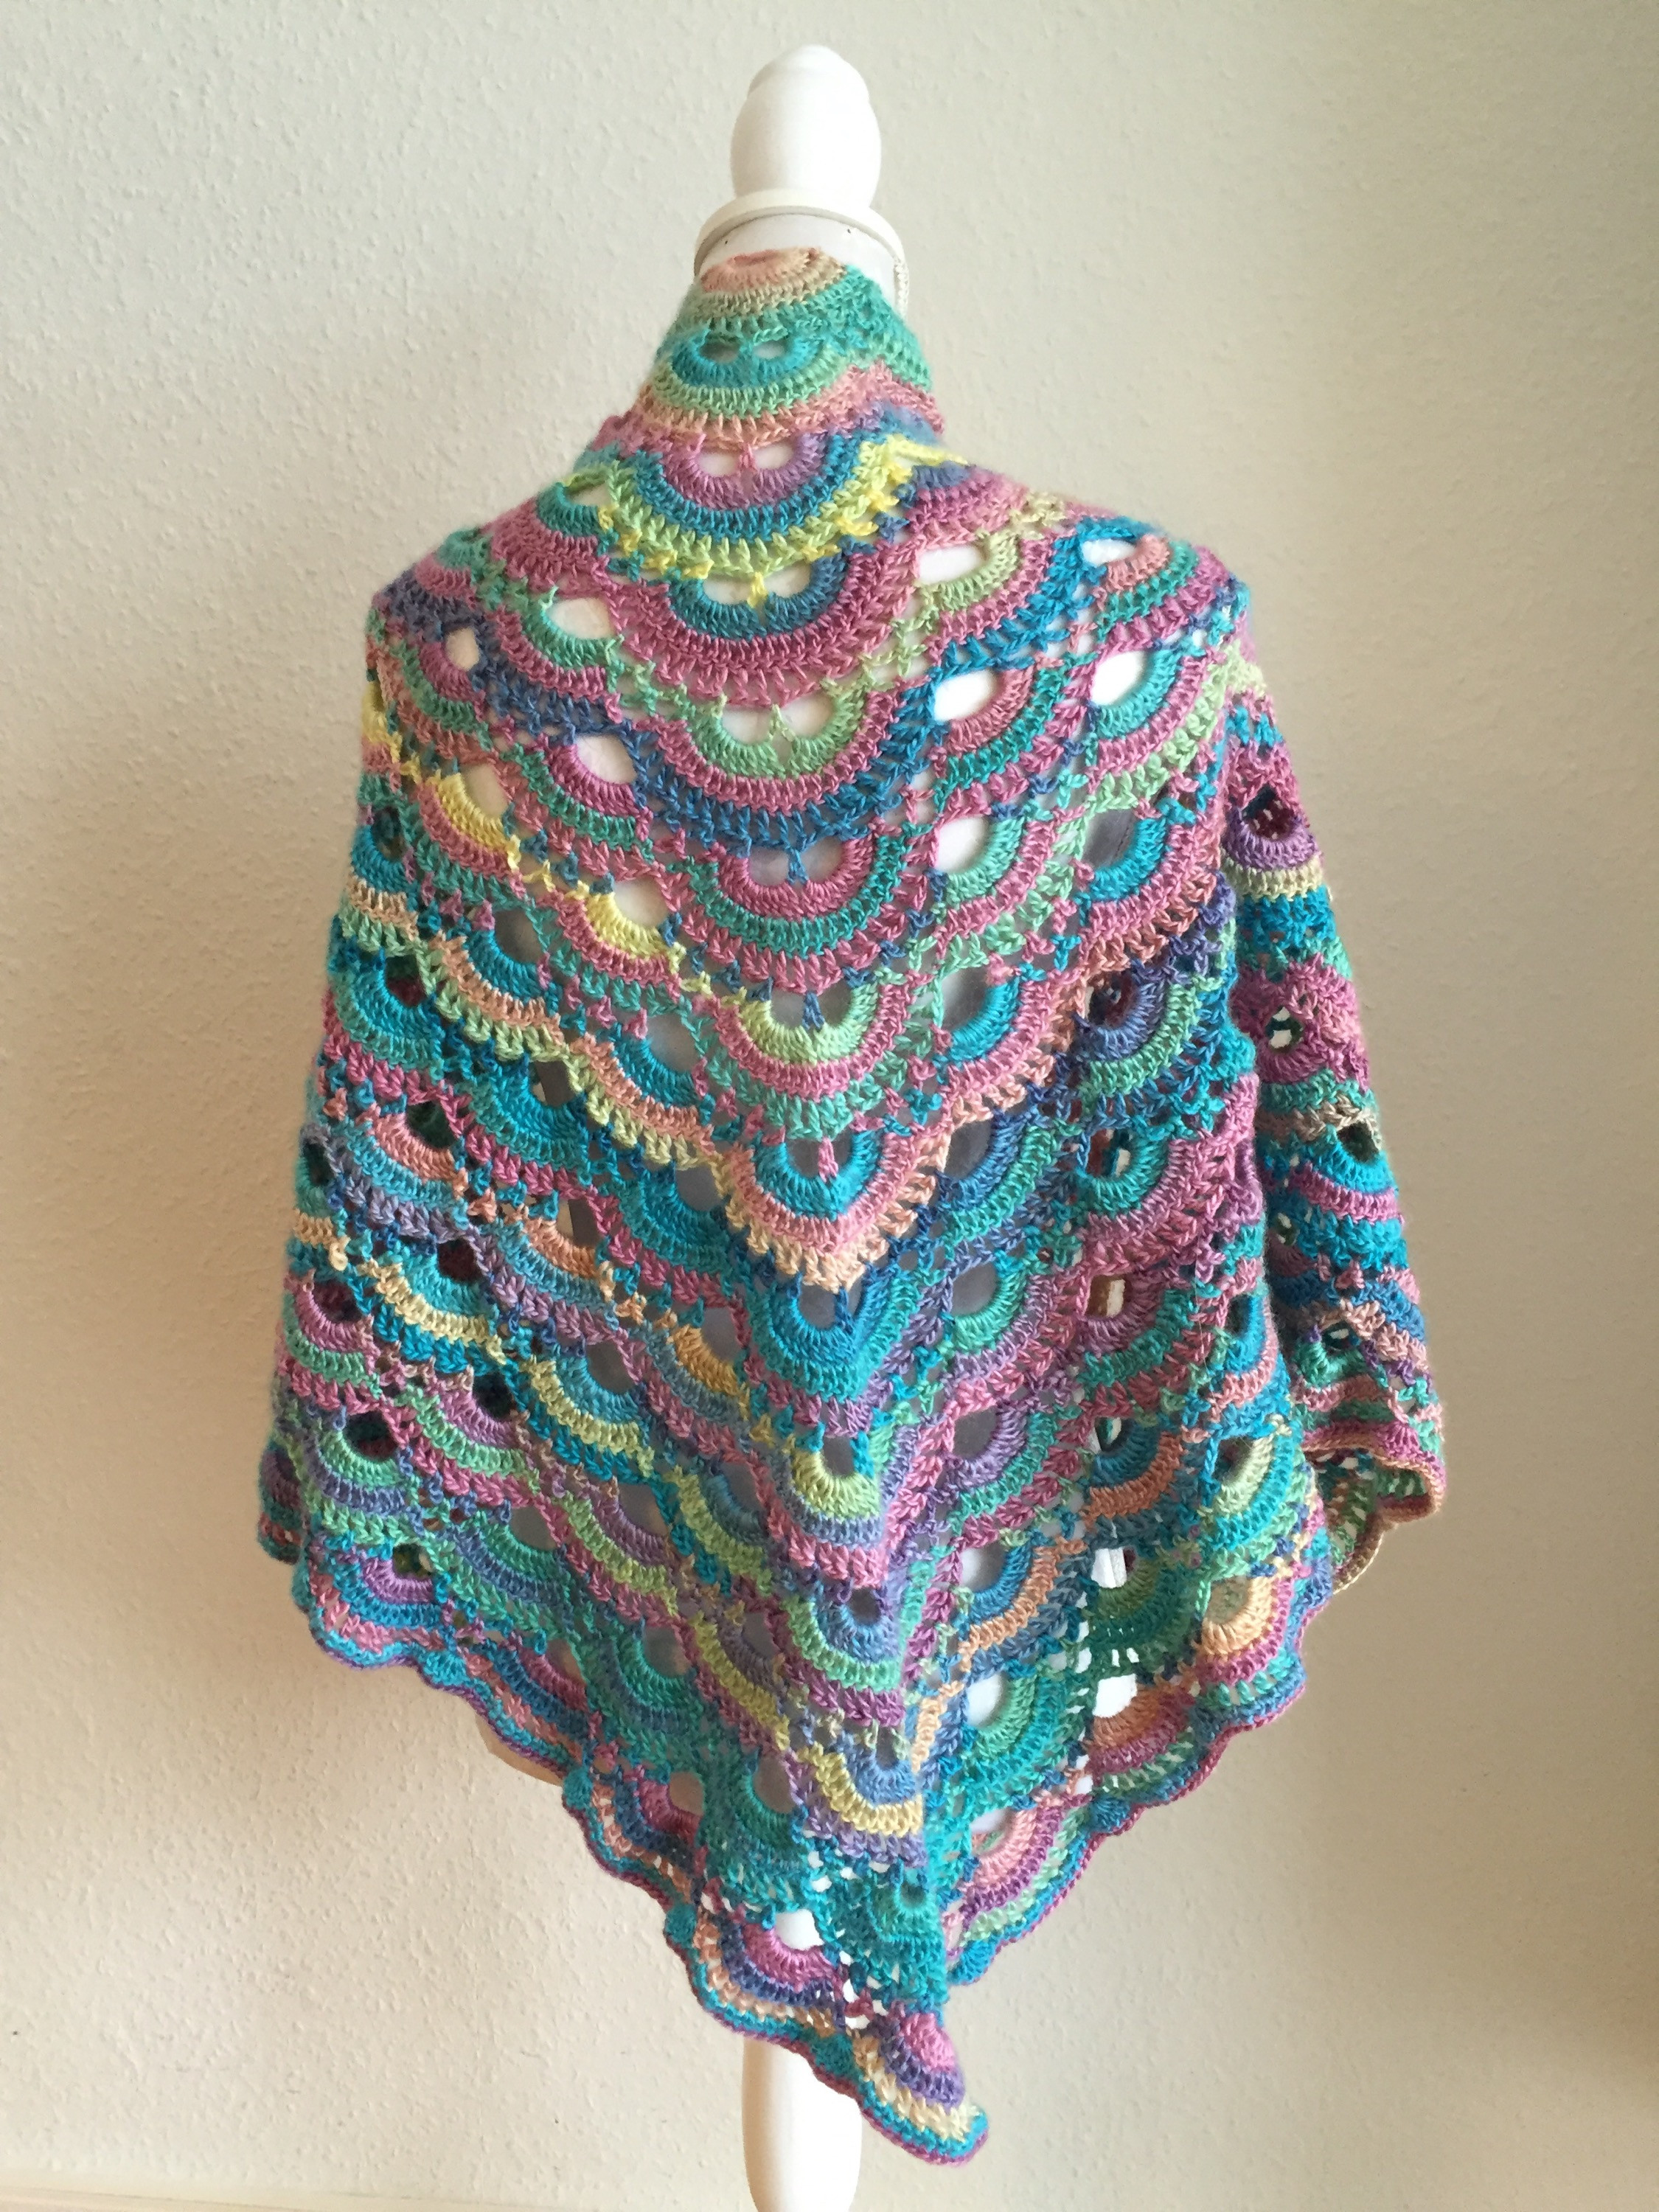 Crochet Shawl Pattern Luxury Crochet Pattern Virus Shawl Dancox for Of Wonderful 50 Pics Crochet Shawl Pattern